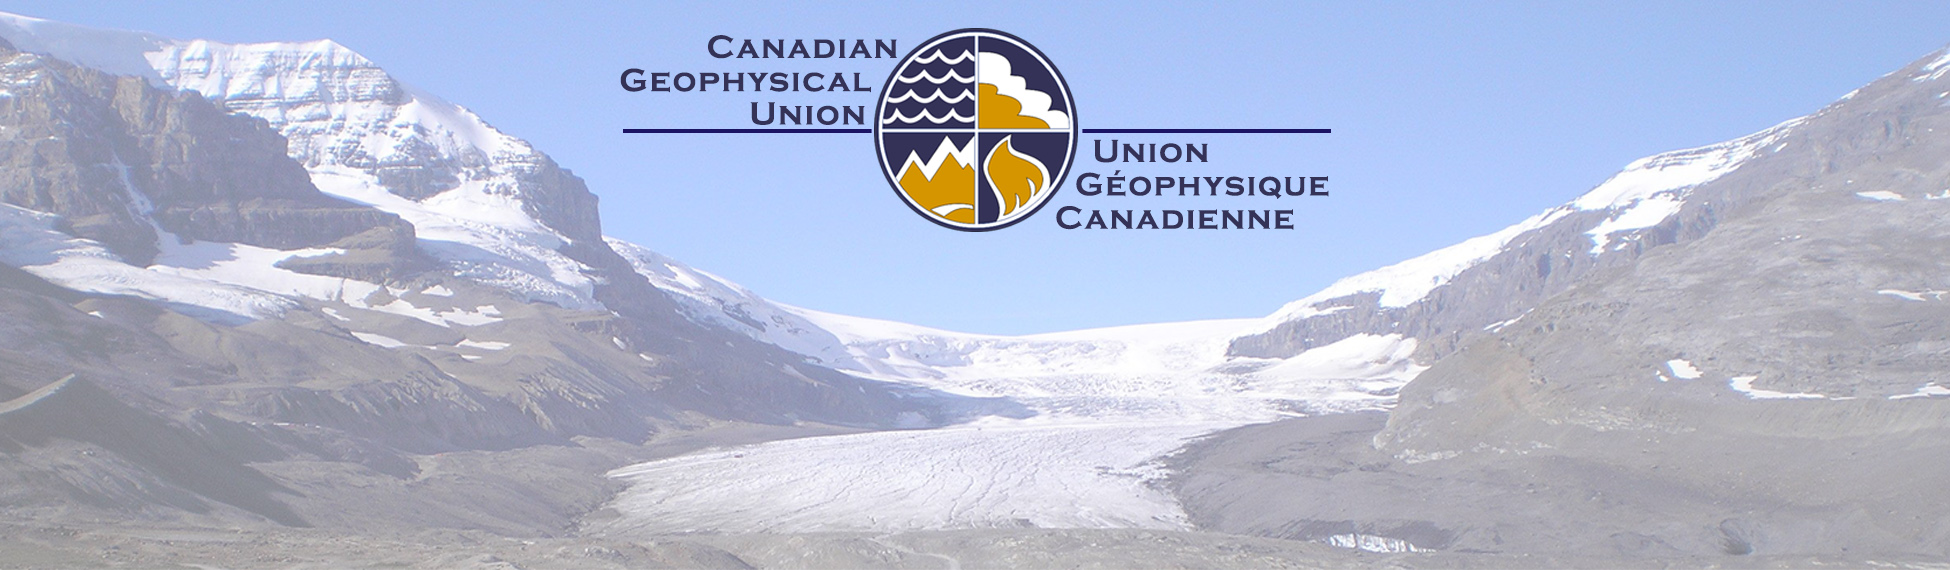 Canada Research Chair (Tier 2) in Climate Action and Social Innovation –  Canadian Geophysical Union / Union Géophysique Canadienne.